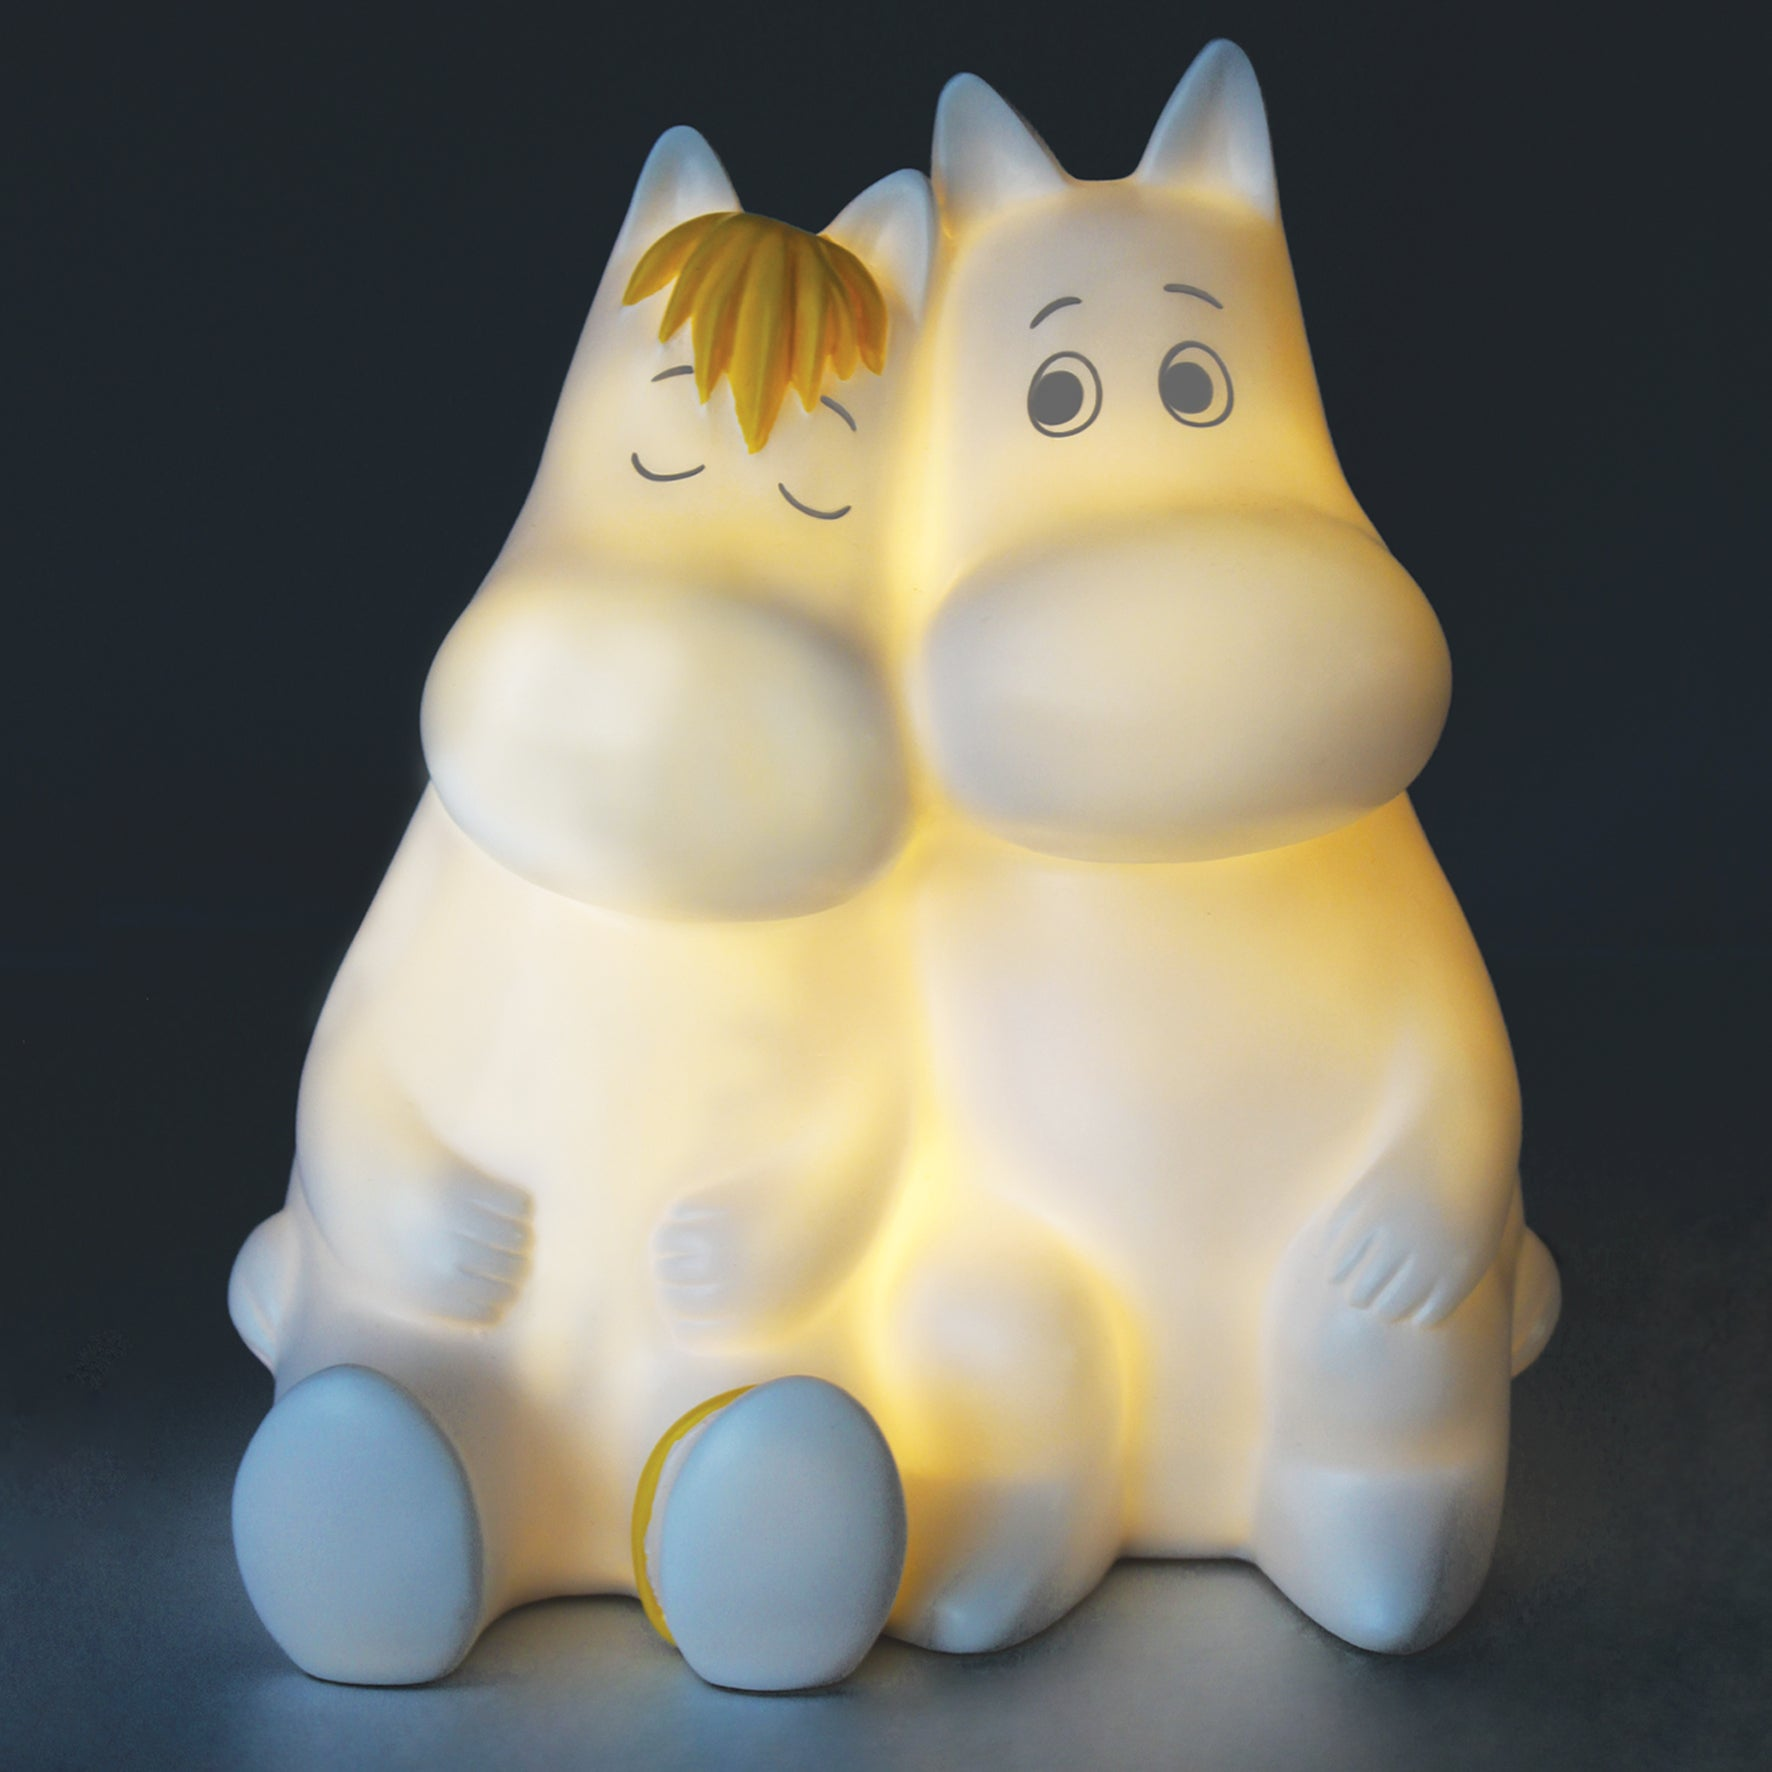 Moomin Love Light by House of Disaster, two adorable Moomins hugging each other